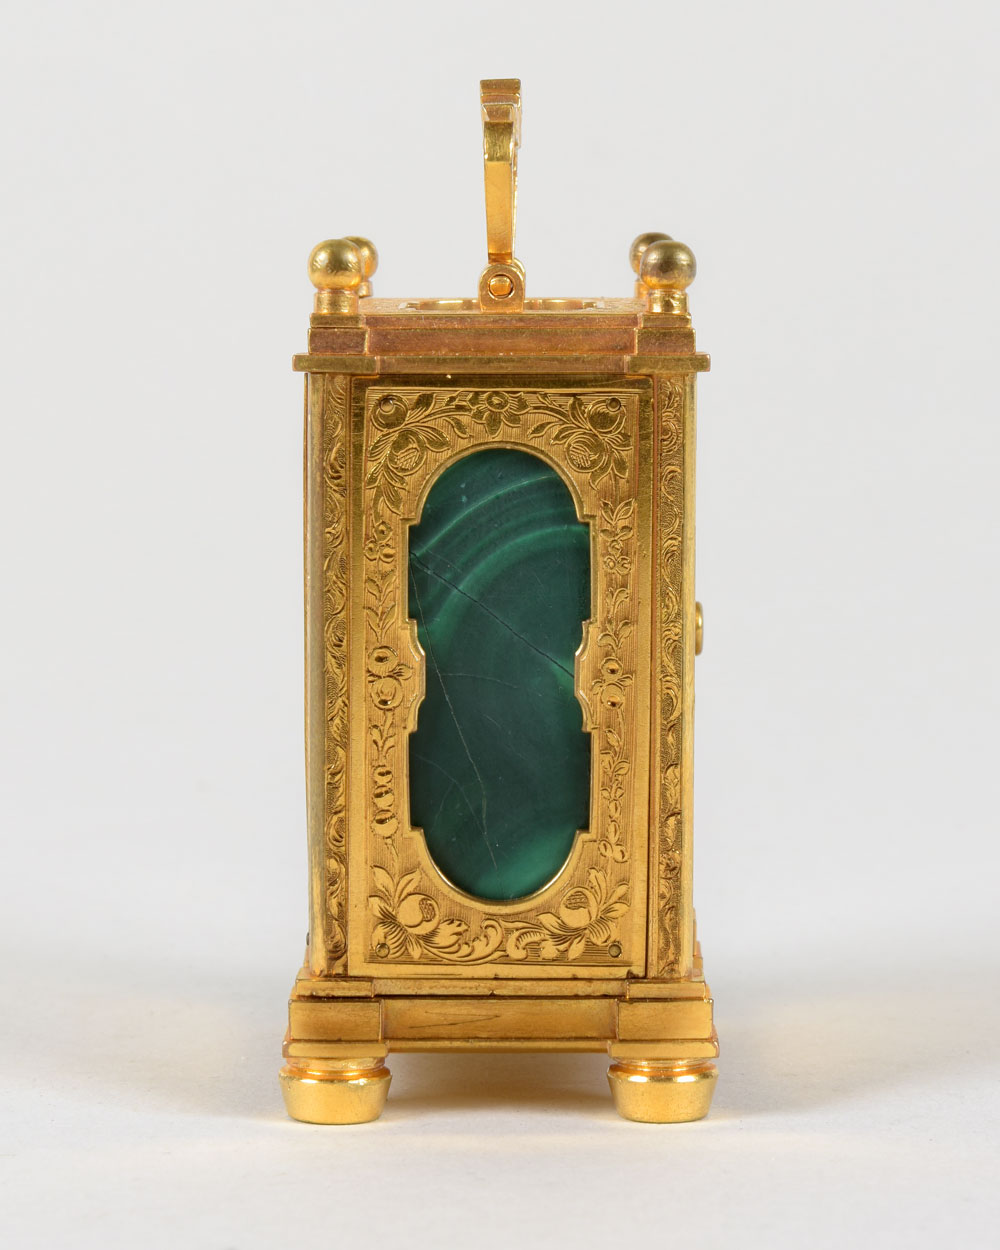 HUNT & ROSKELL supplied by  Thomas Cole.An exceptionally rare gilt engraved miniature carriage timepiece with malachite panels